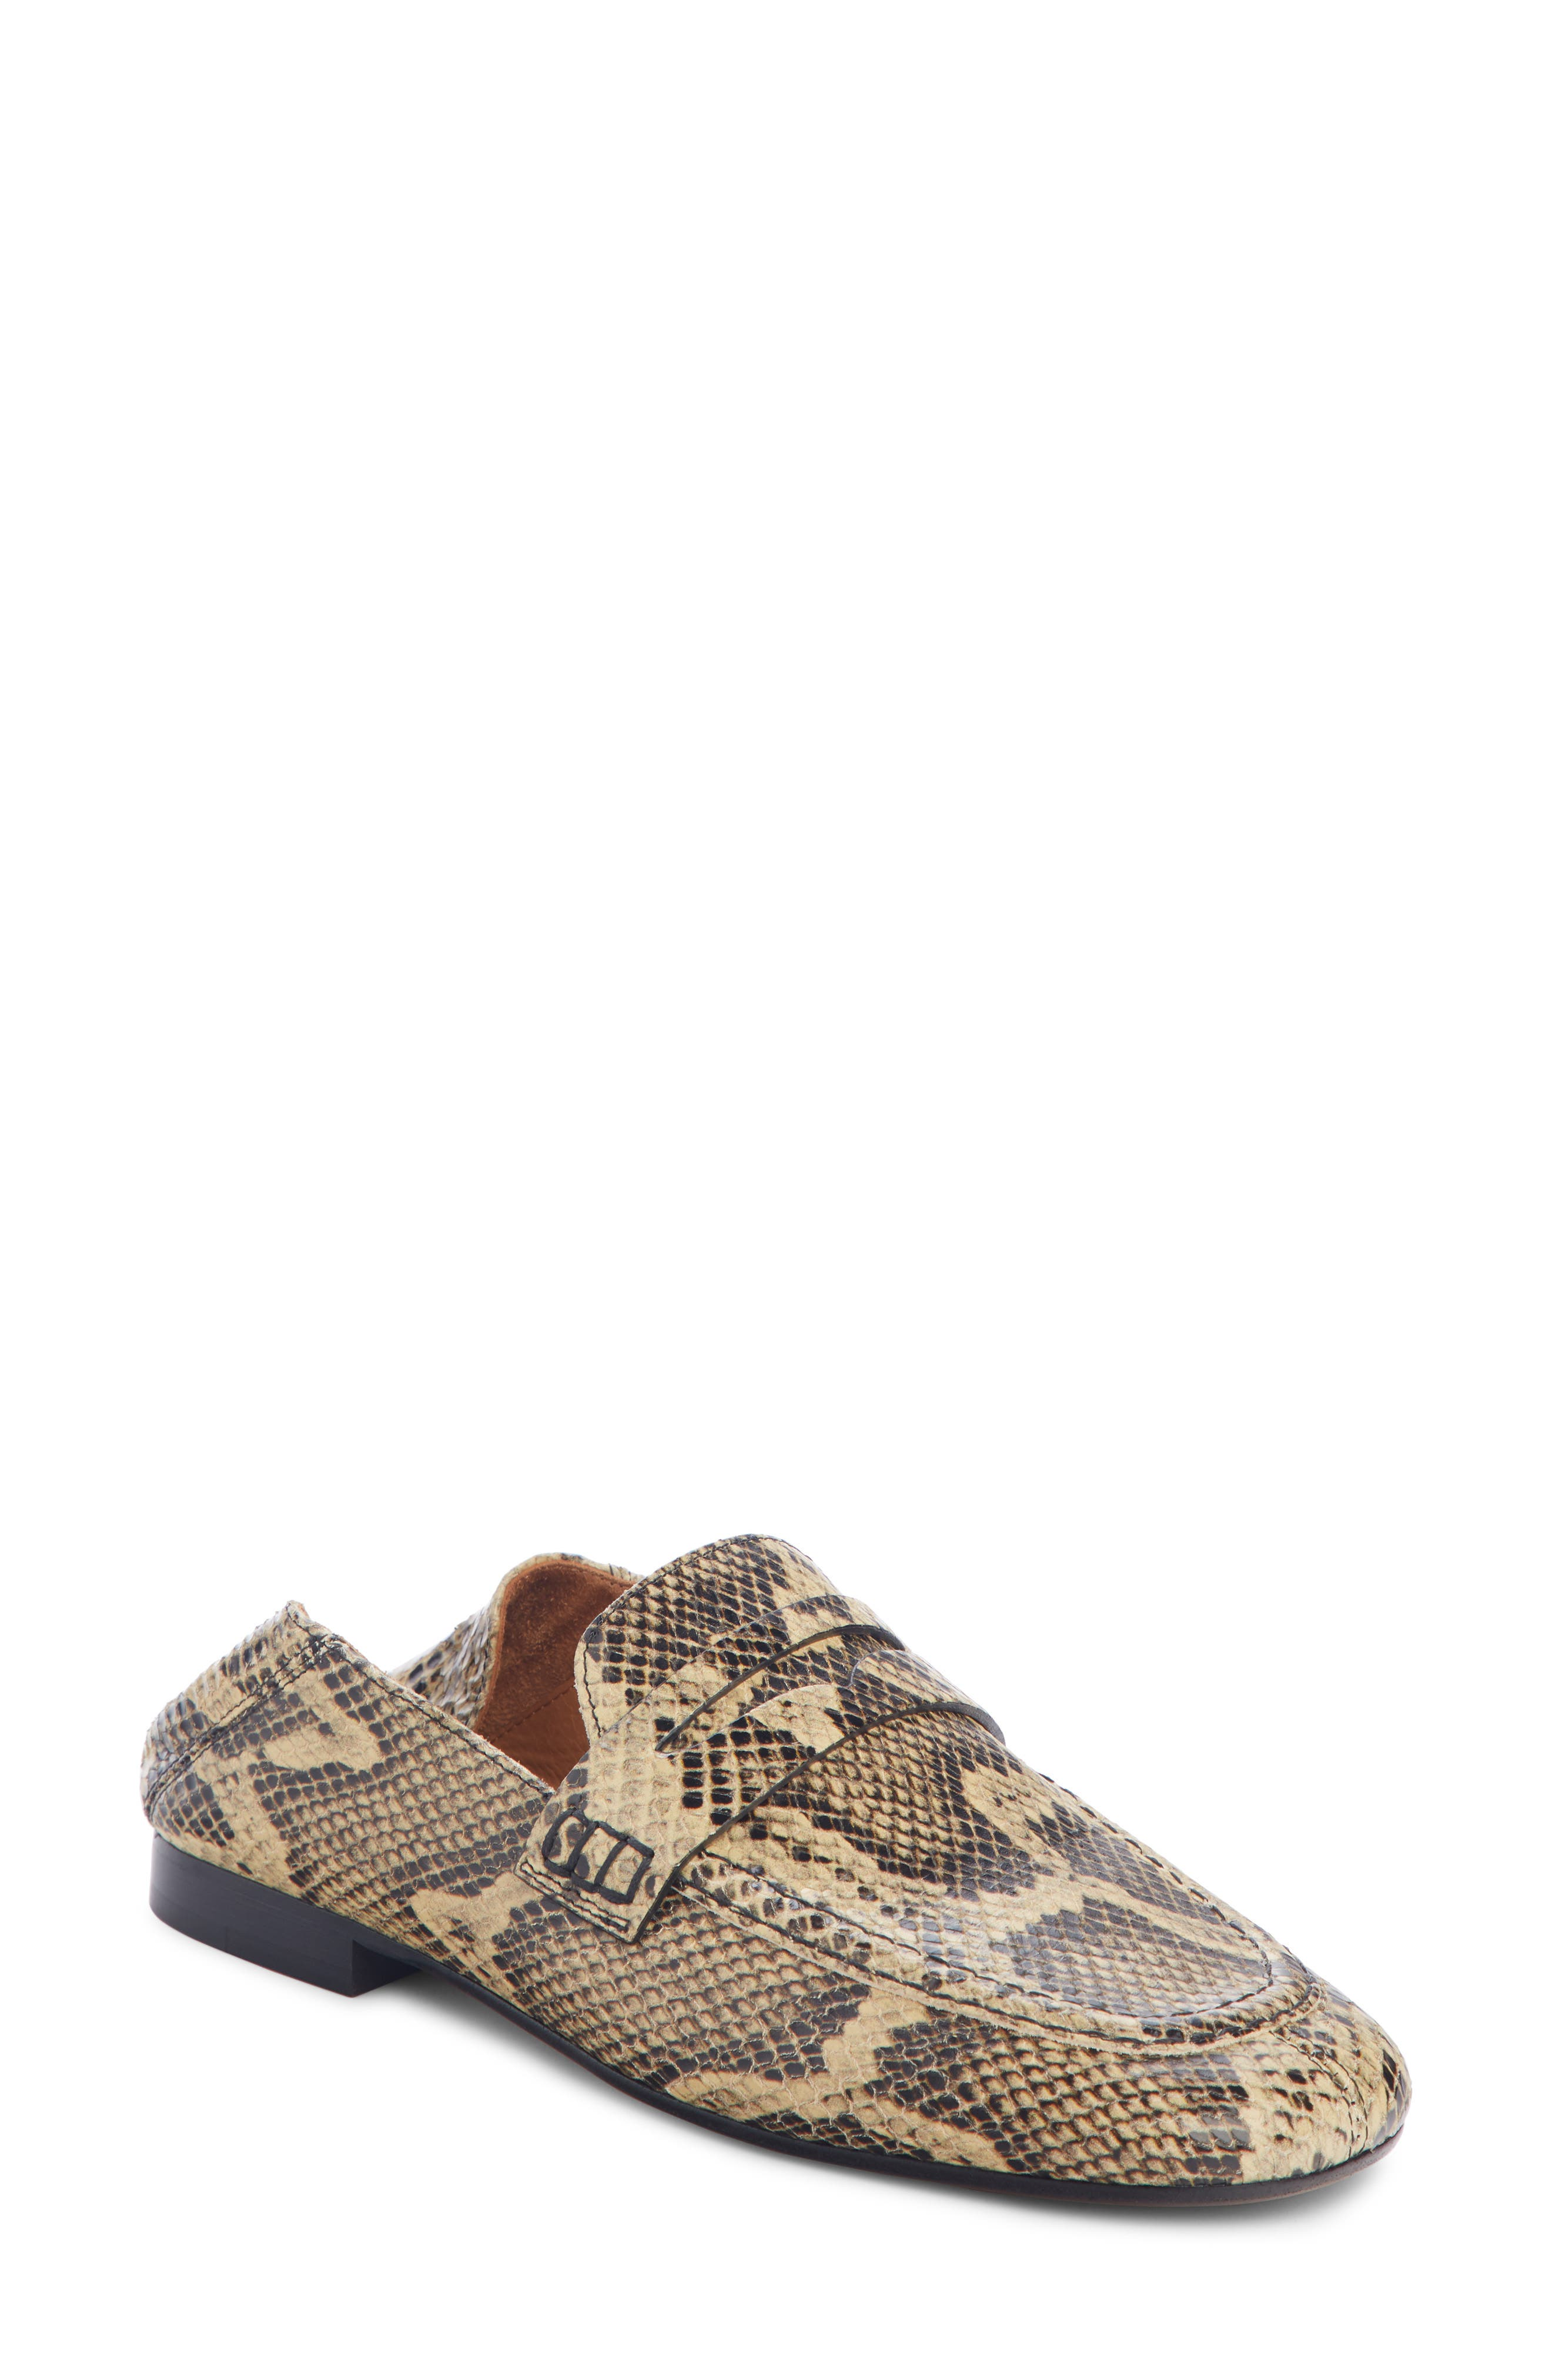 Fezzy Snakeskin Embossed Convertible Loafer,                         Main,                         color, NATURAL EXOTIC